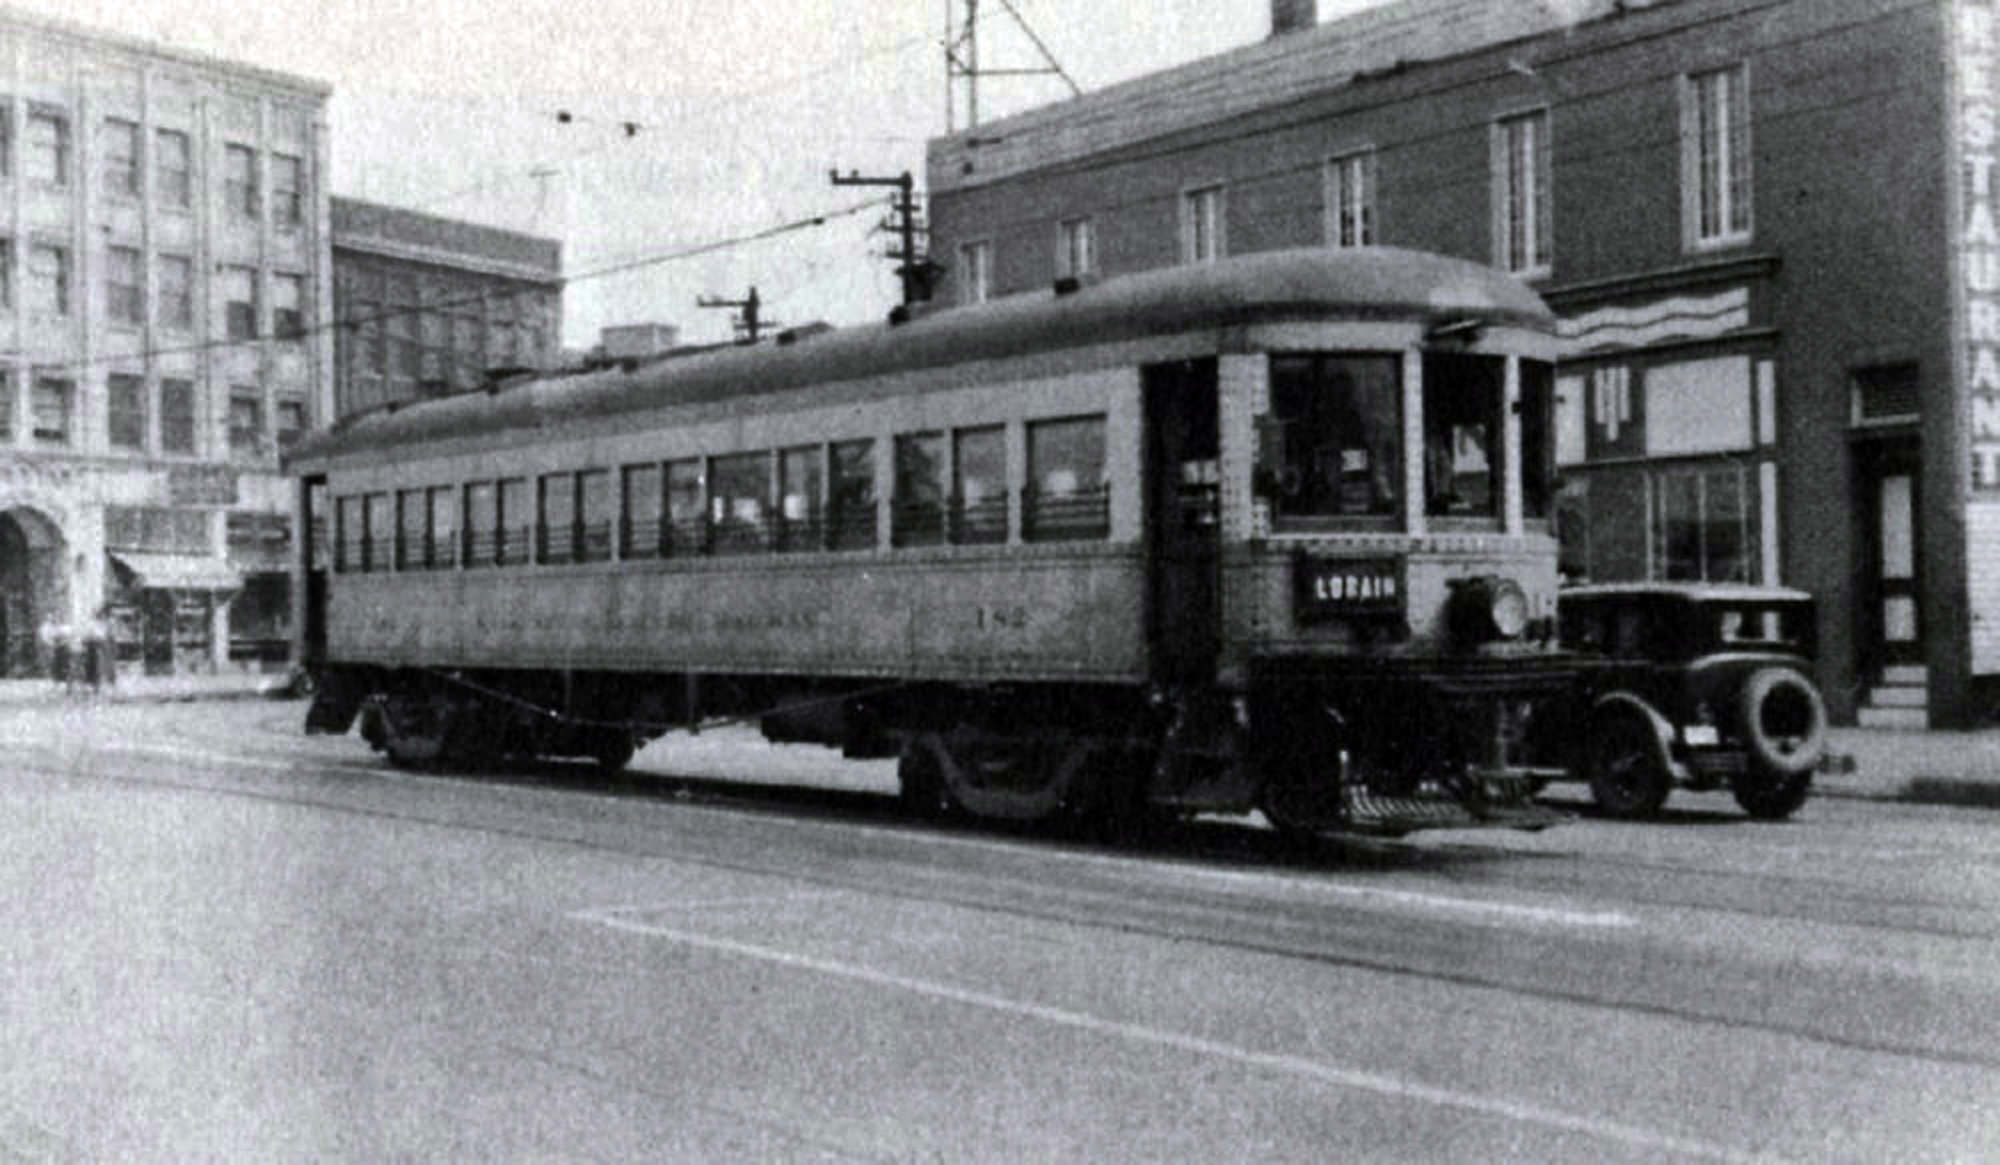 Electric_Train_Car_1938_2000_x_1165